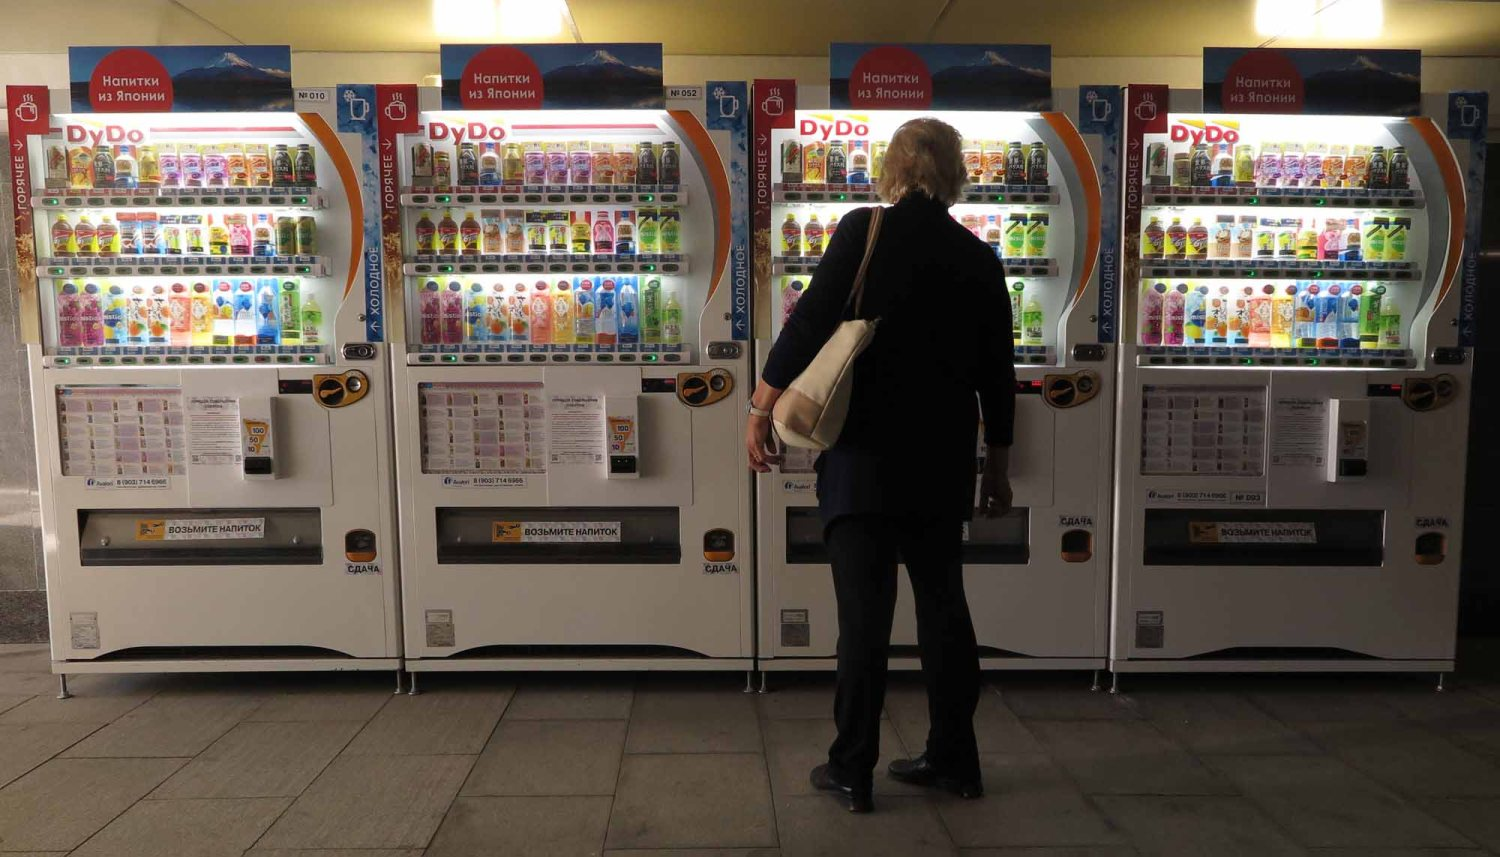 Russia-Moscow-Street-Scenes-Vending-Machines